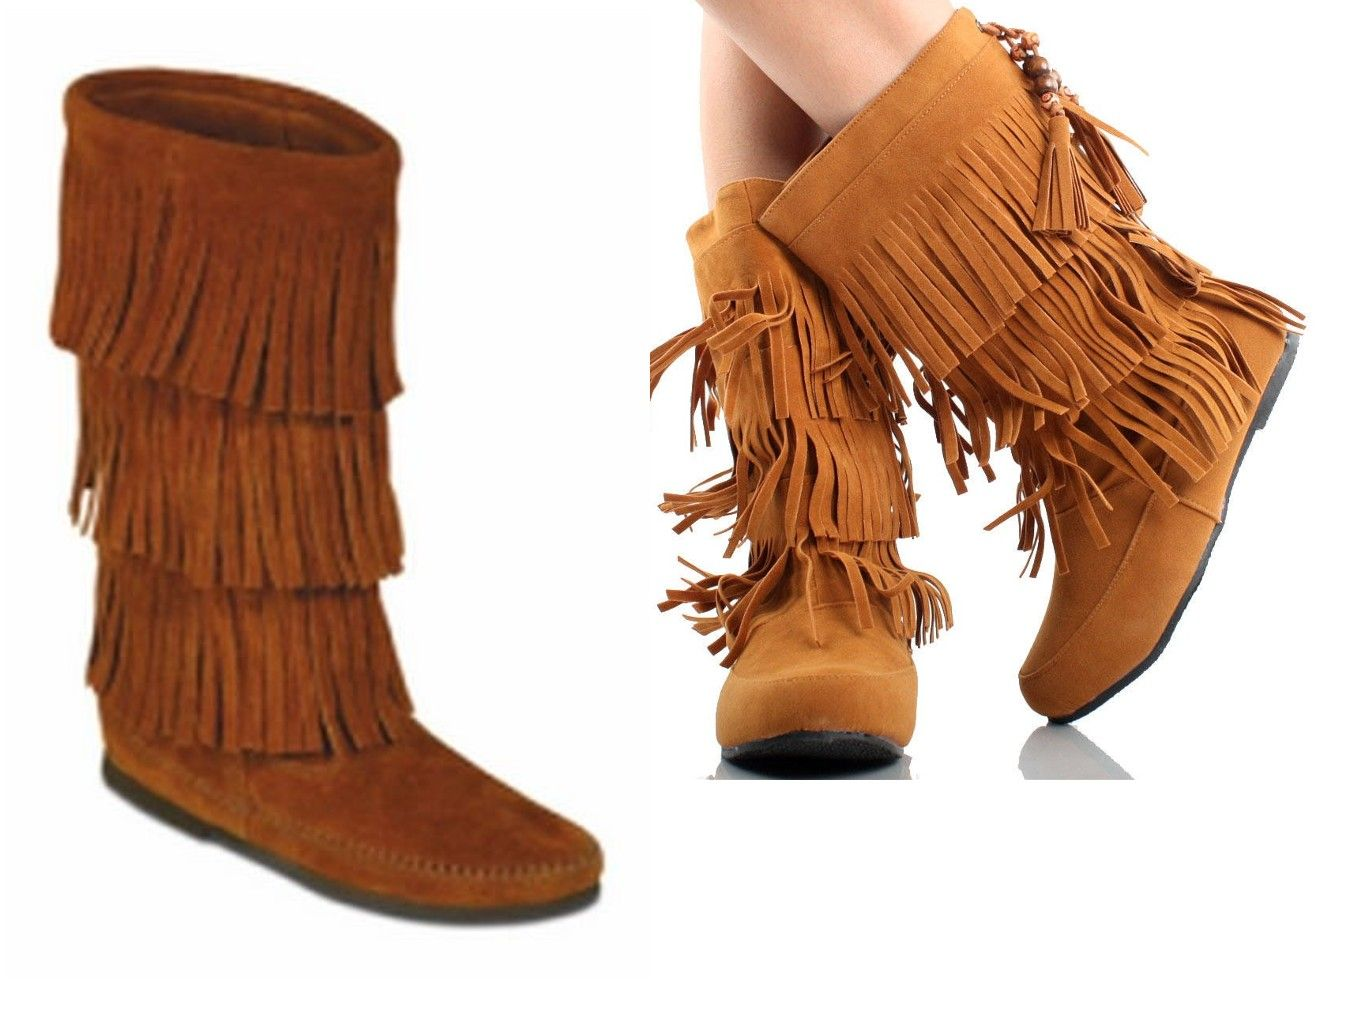 apache indian moccasin boots arizona american indians